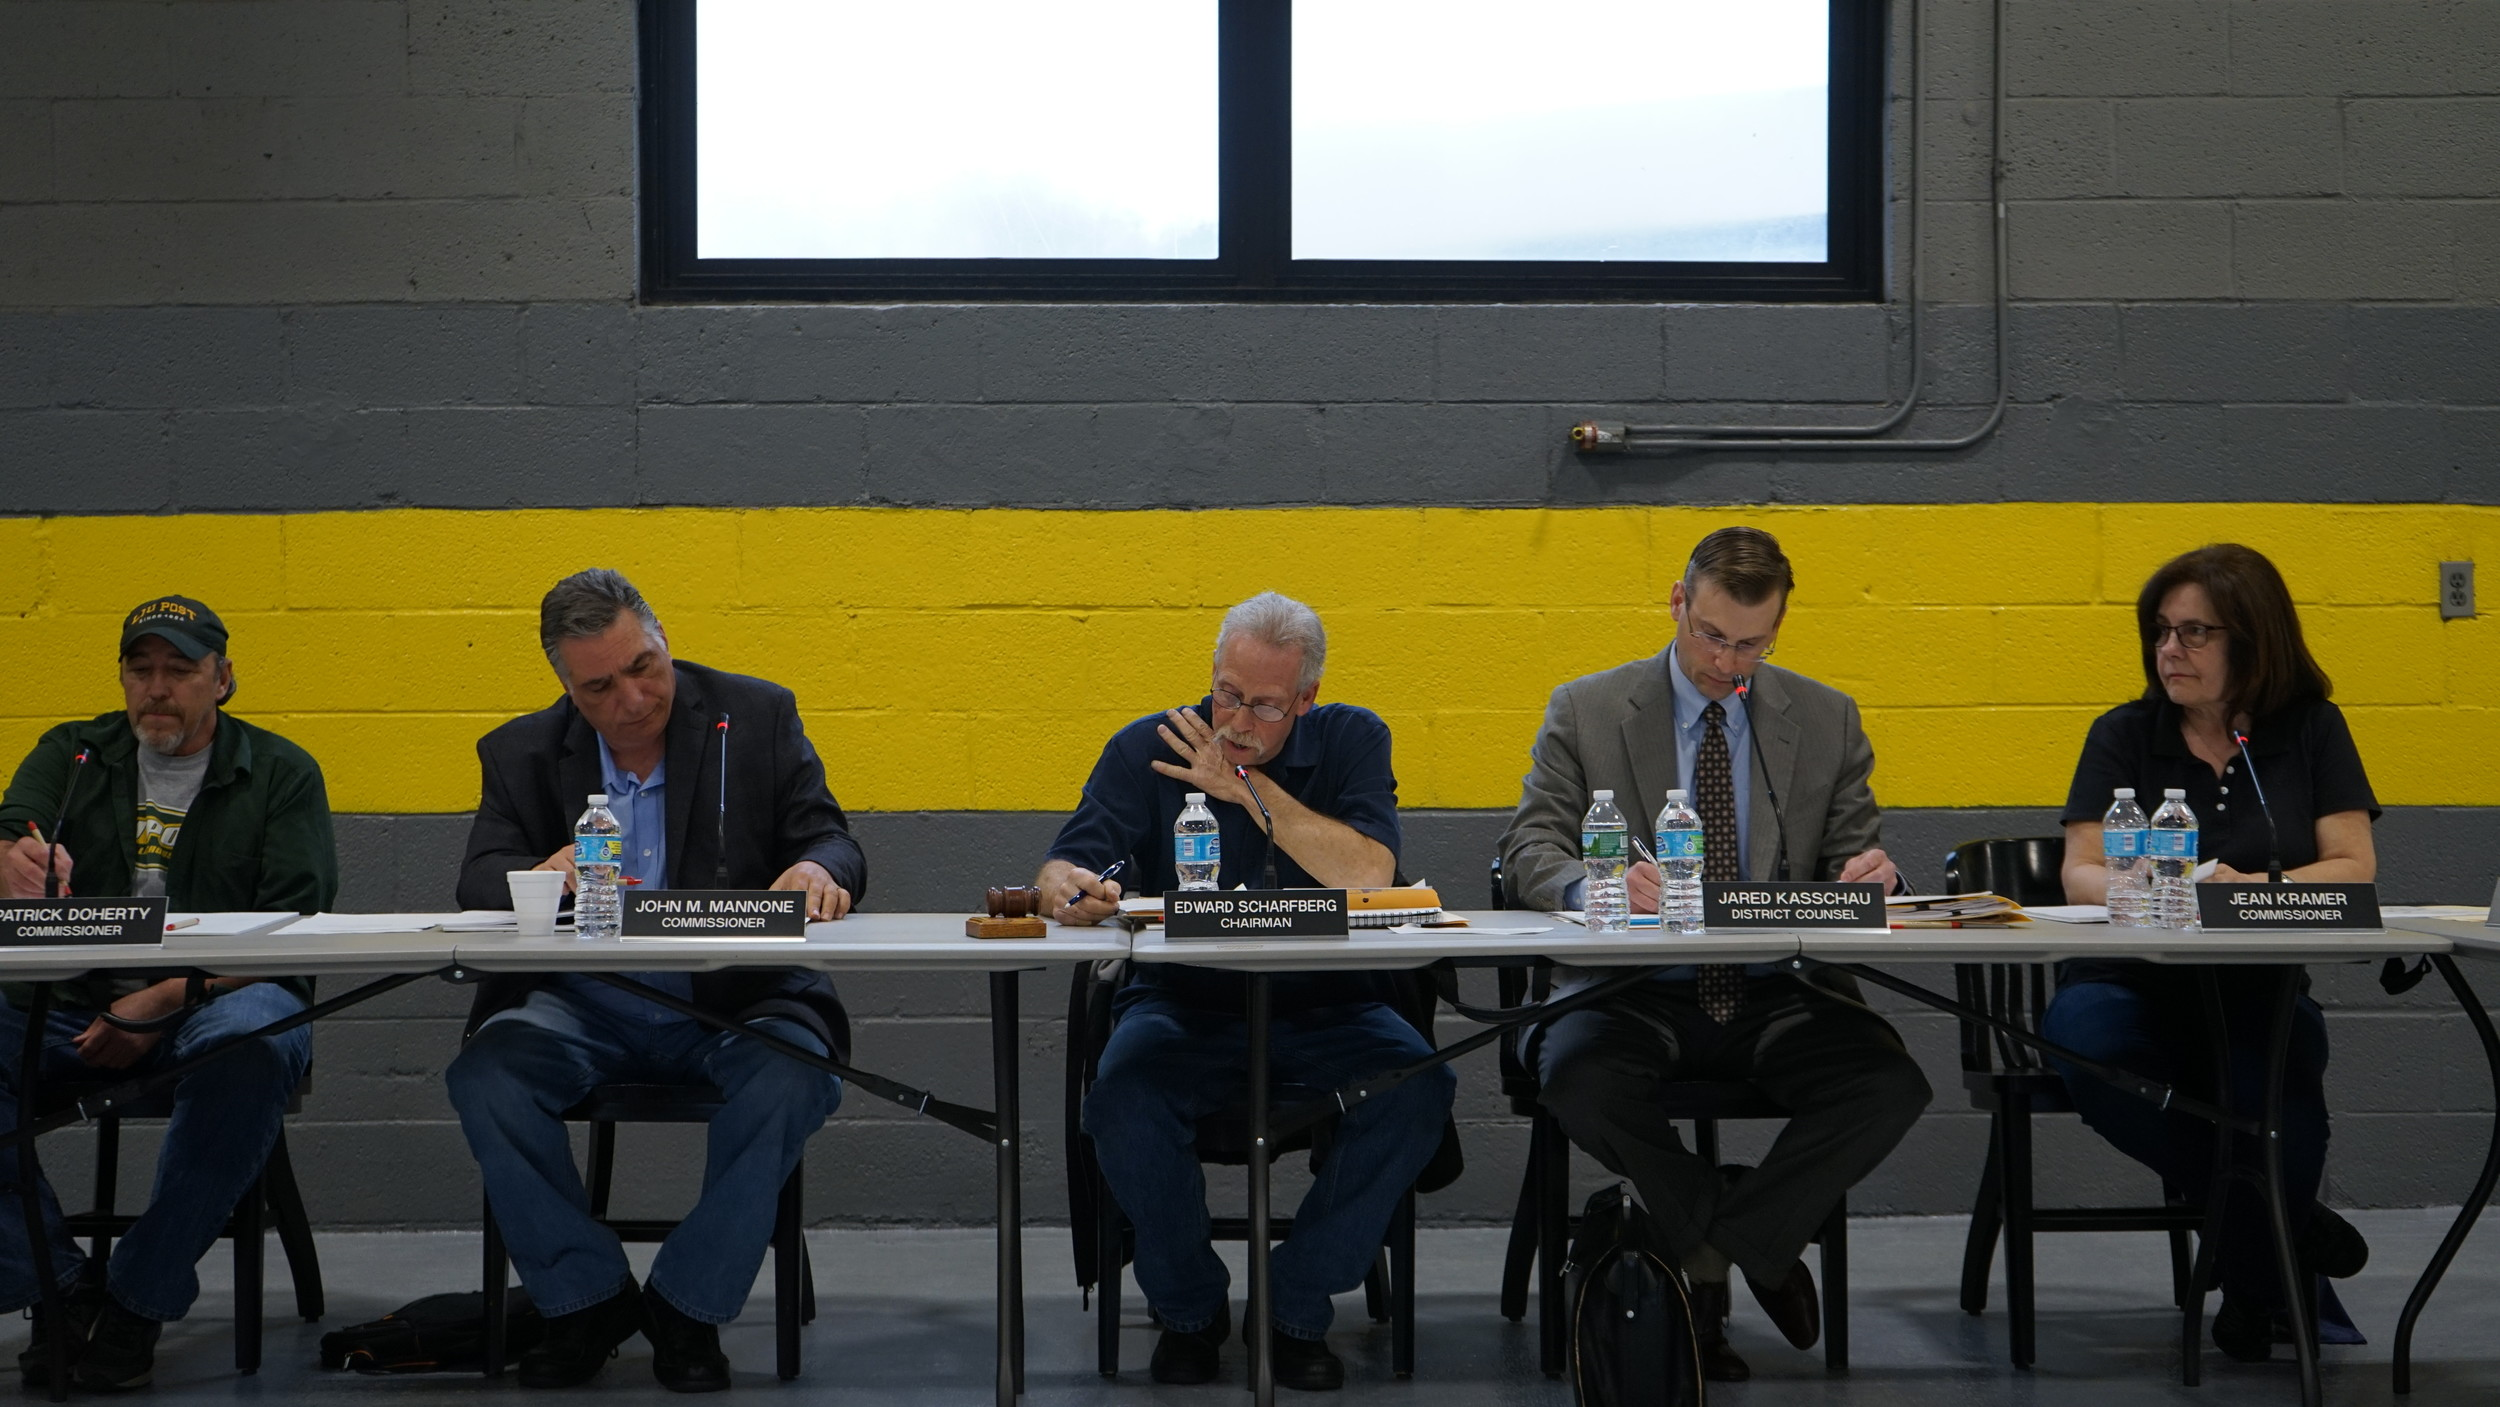 Sanitation District No. 7's board of commissioners on May 4. The latest suit against the district alleges that former sanitation Commissioner Jean Kramer, far right, and former board Chairman Ed Scharfberg, center, and others retaliated against sanitation worker Richard Zappa for his public support of incoming commissioner and current Chairman John Mannone, second from left, during his 2015 campaign.